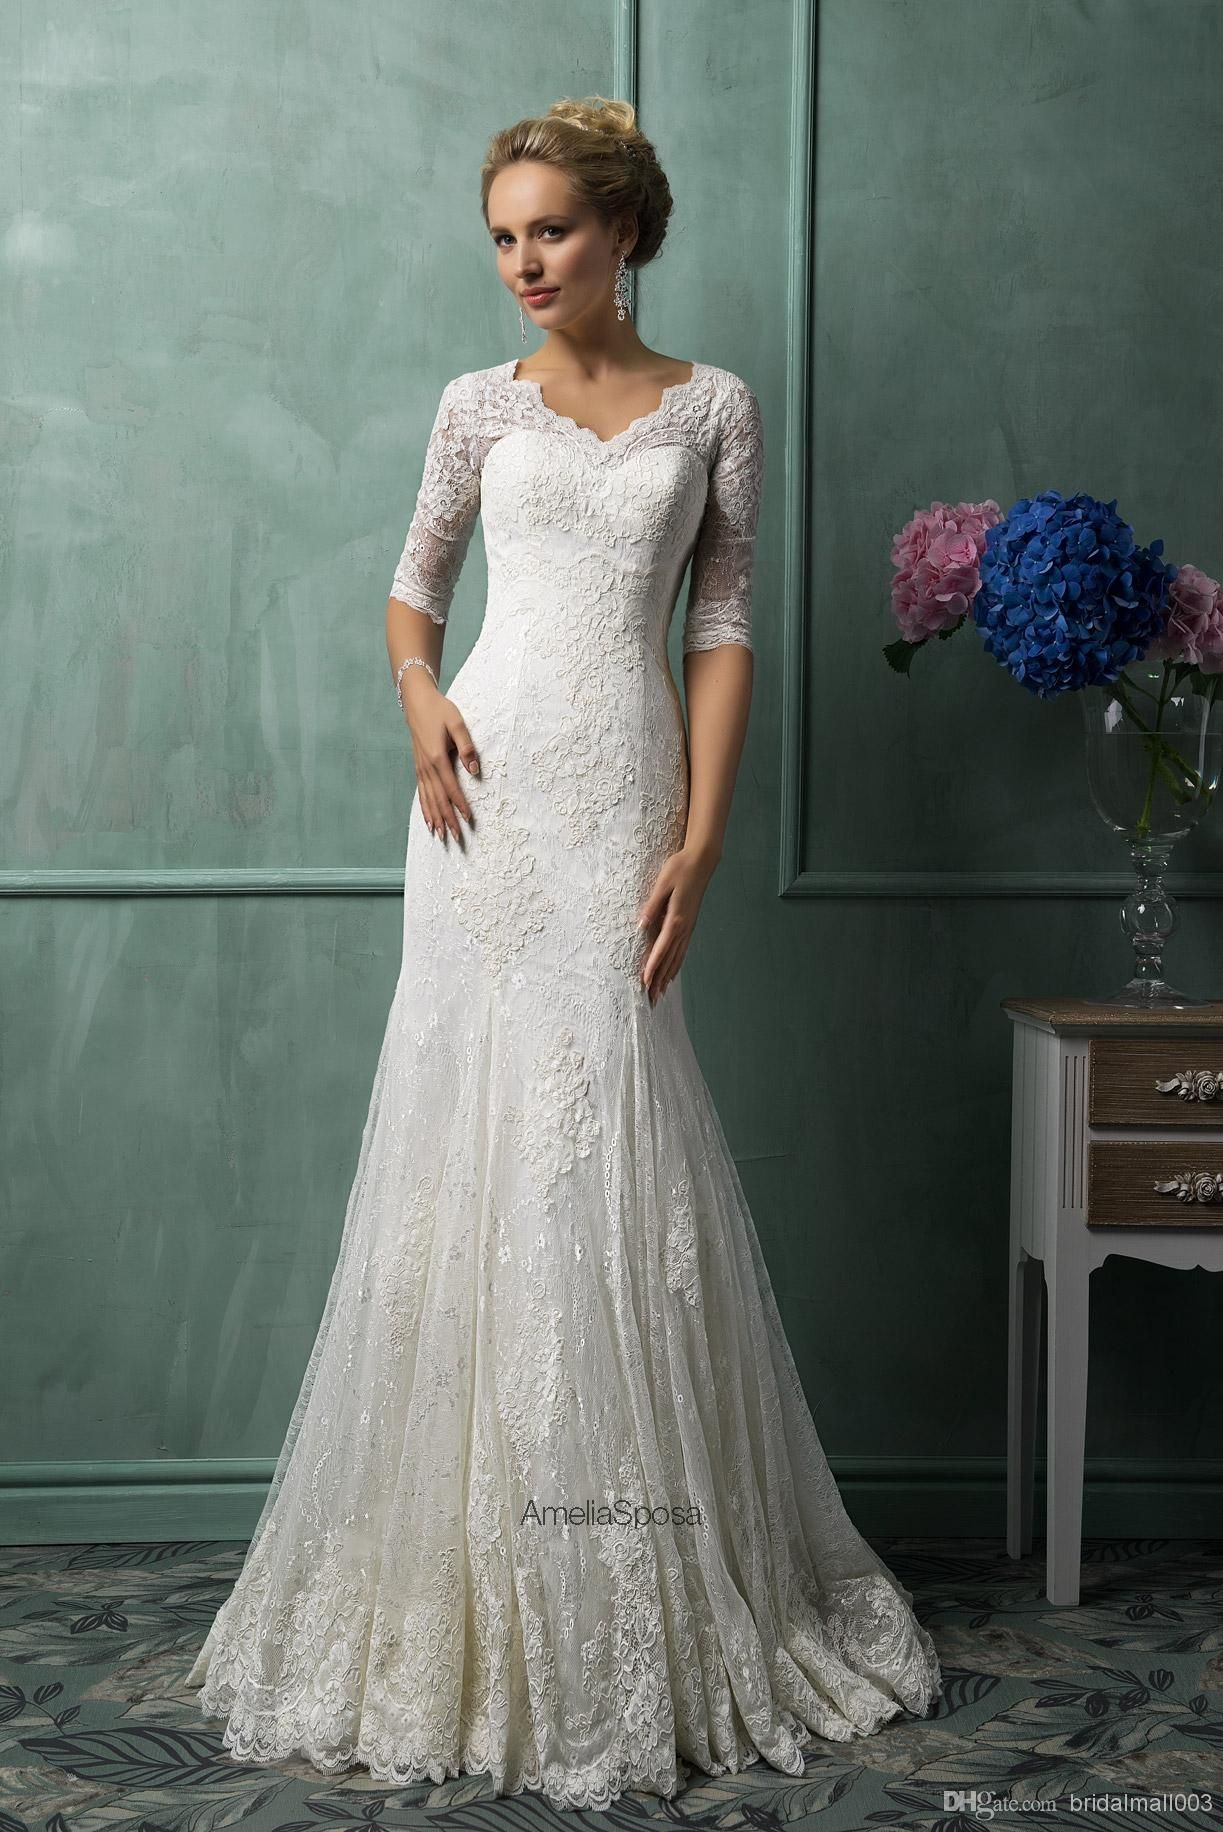 elegant lace wedding dress - Google Search | Older Bride ...